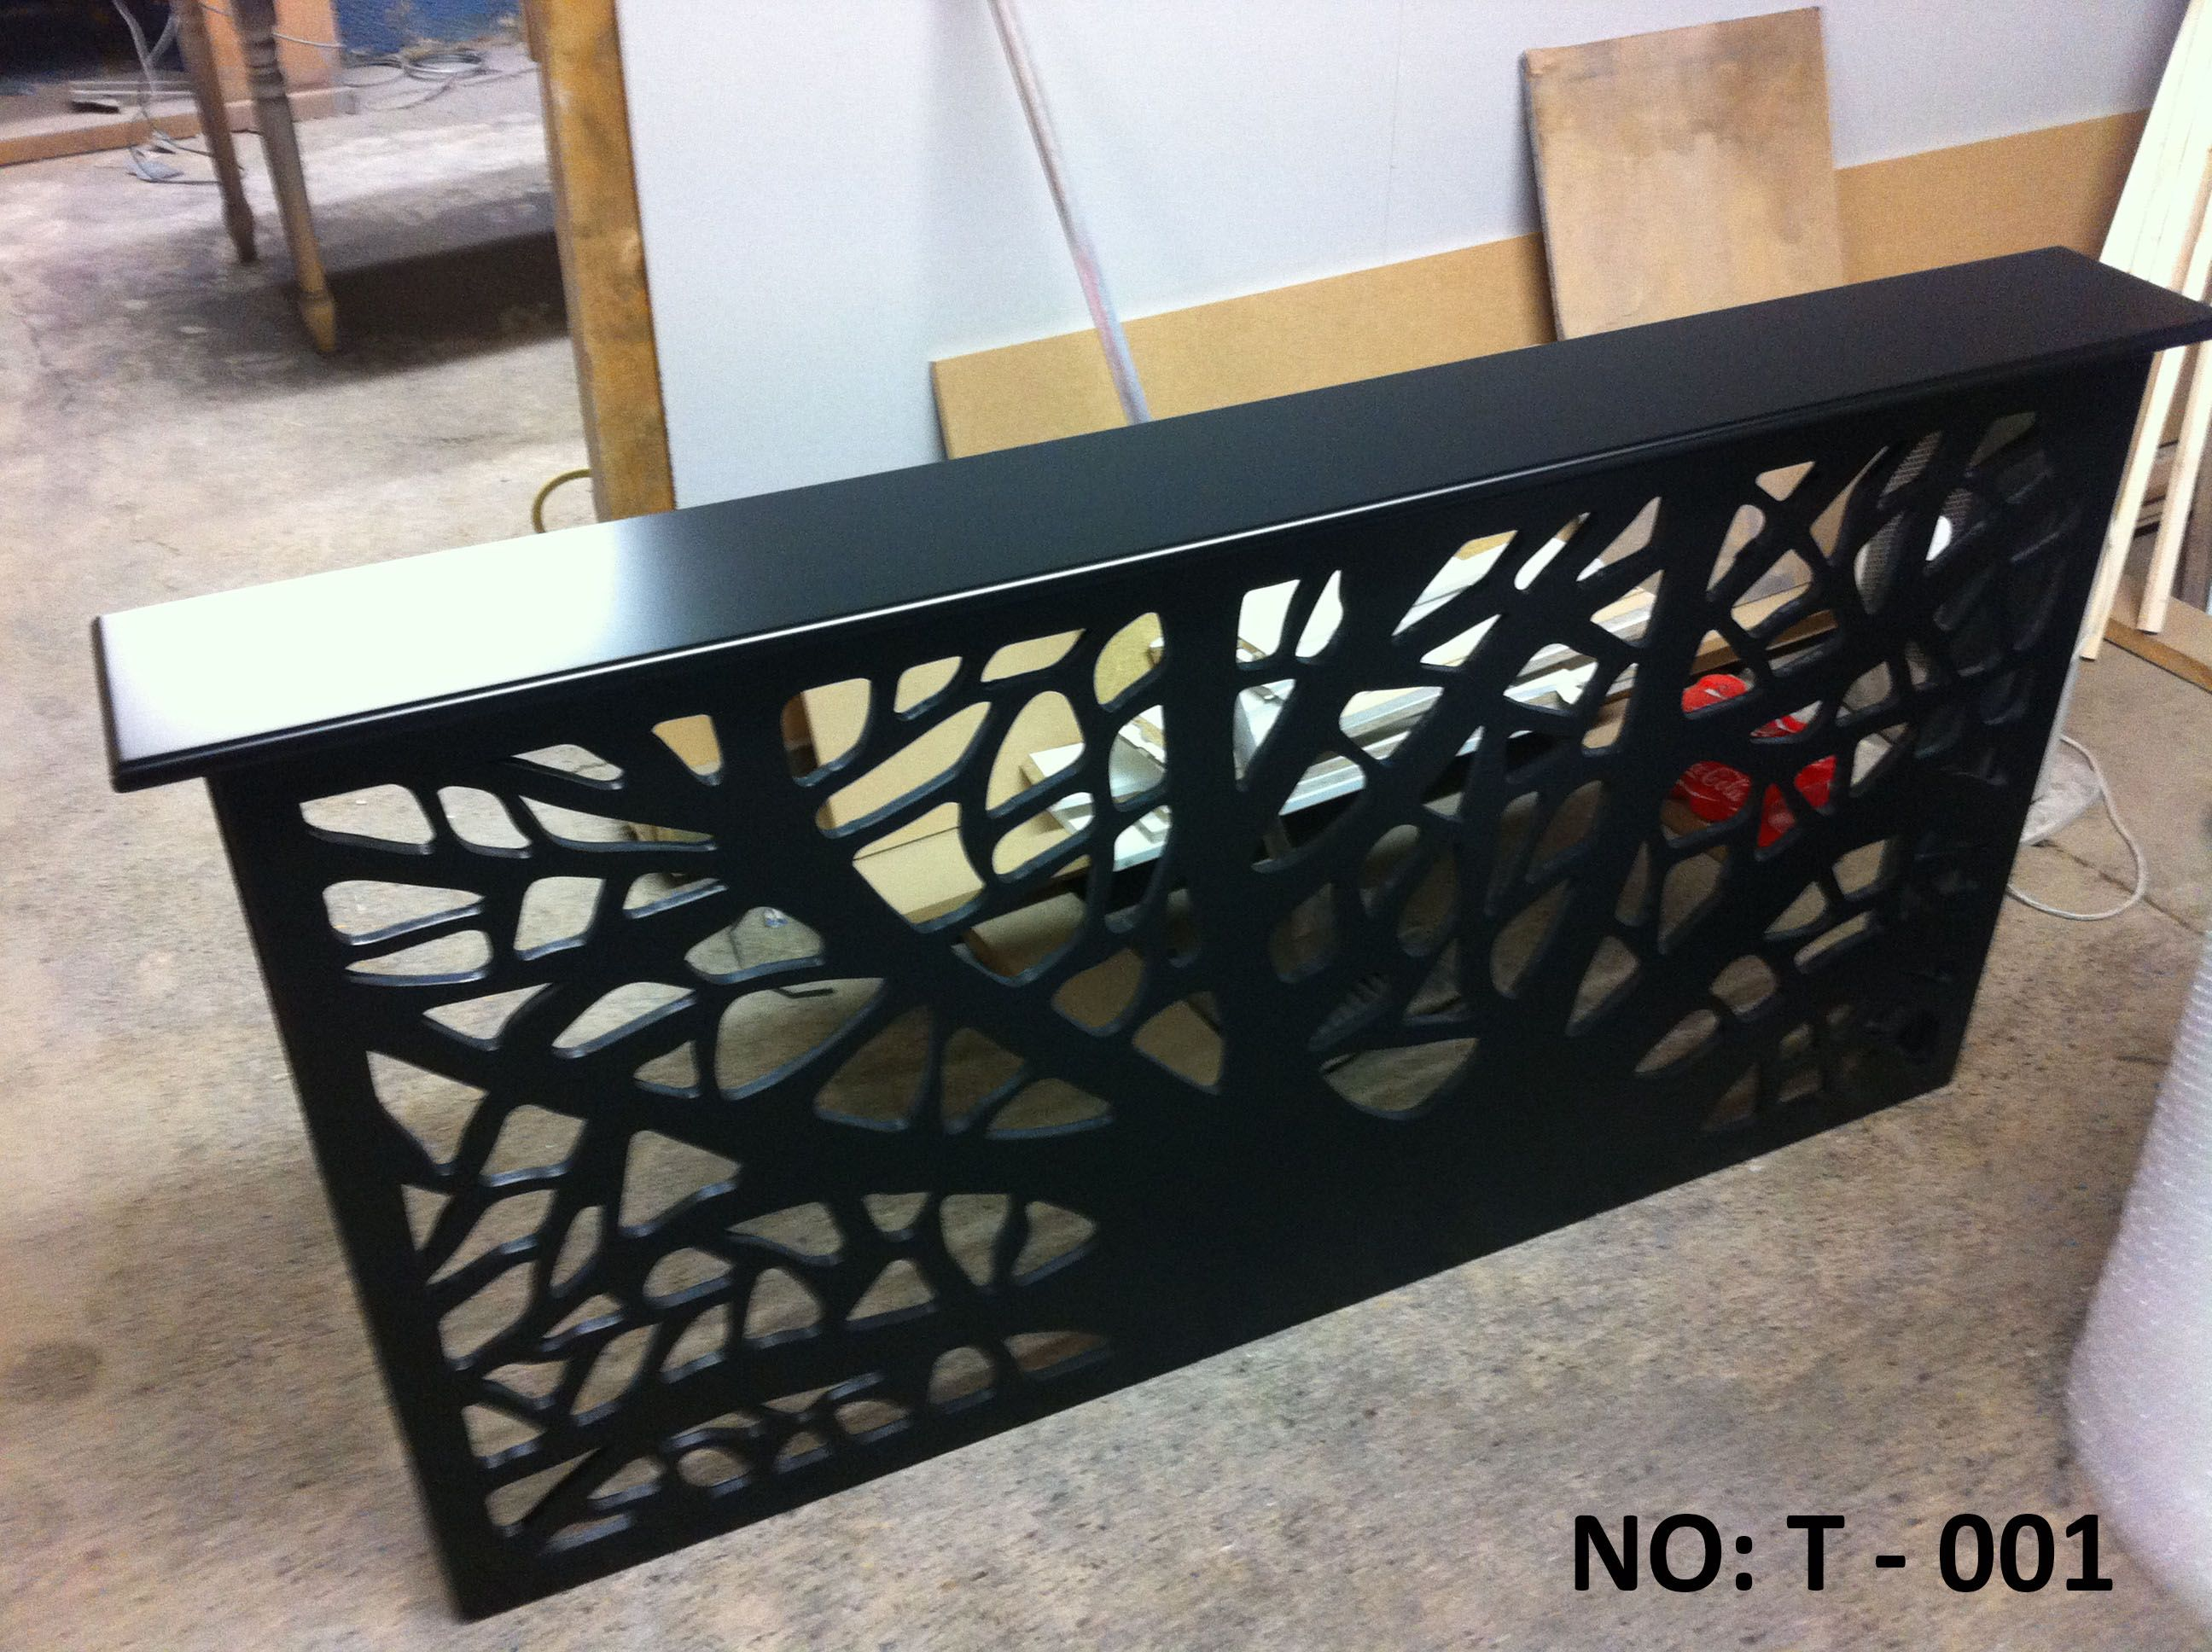 Dark Wood Radiator Covers Cool Radiator Covers To Complete Your Home Accessories